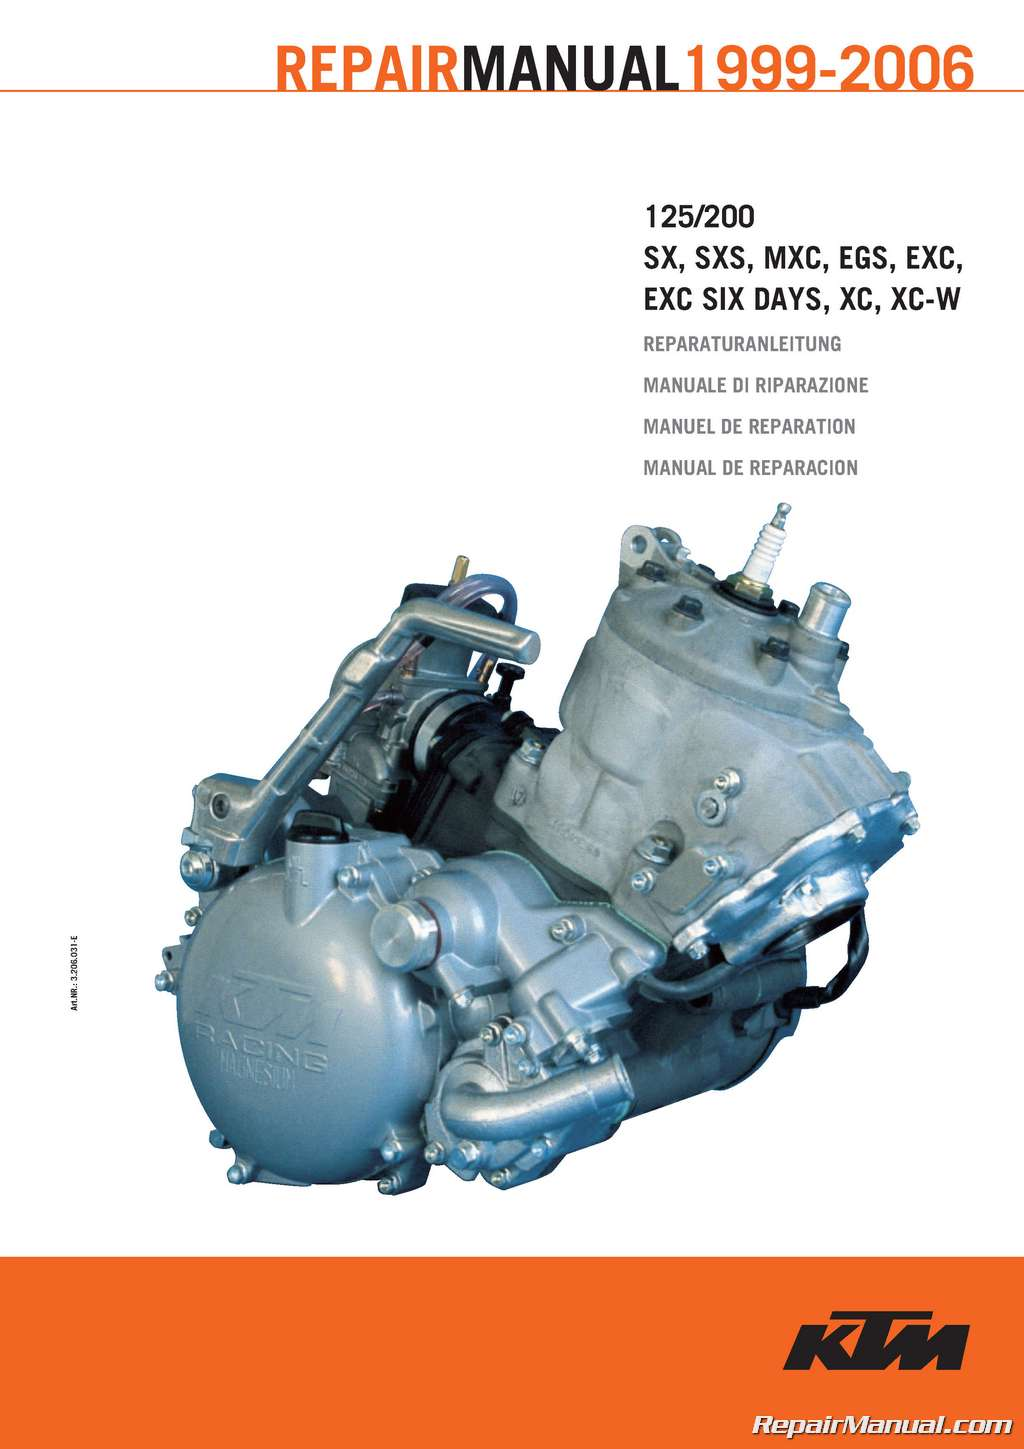 1999 2006 ktm 125 200 two stroke motorcycle engine printed